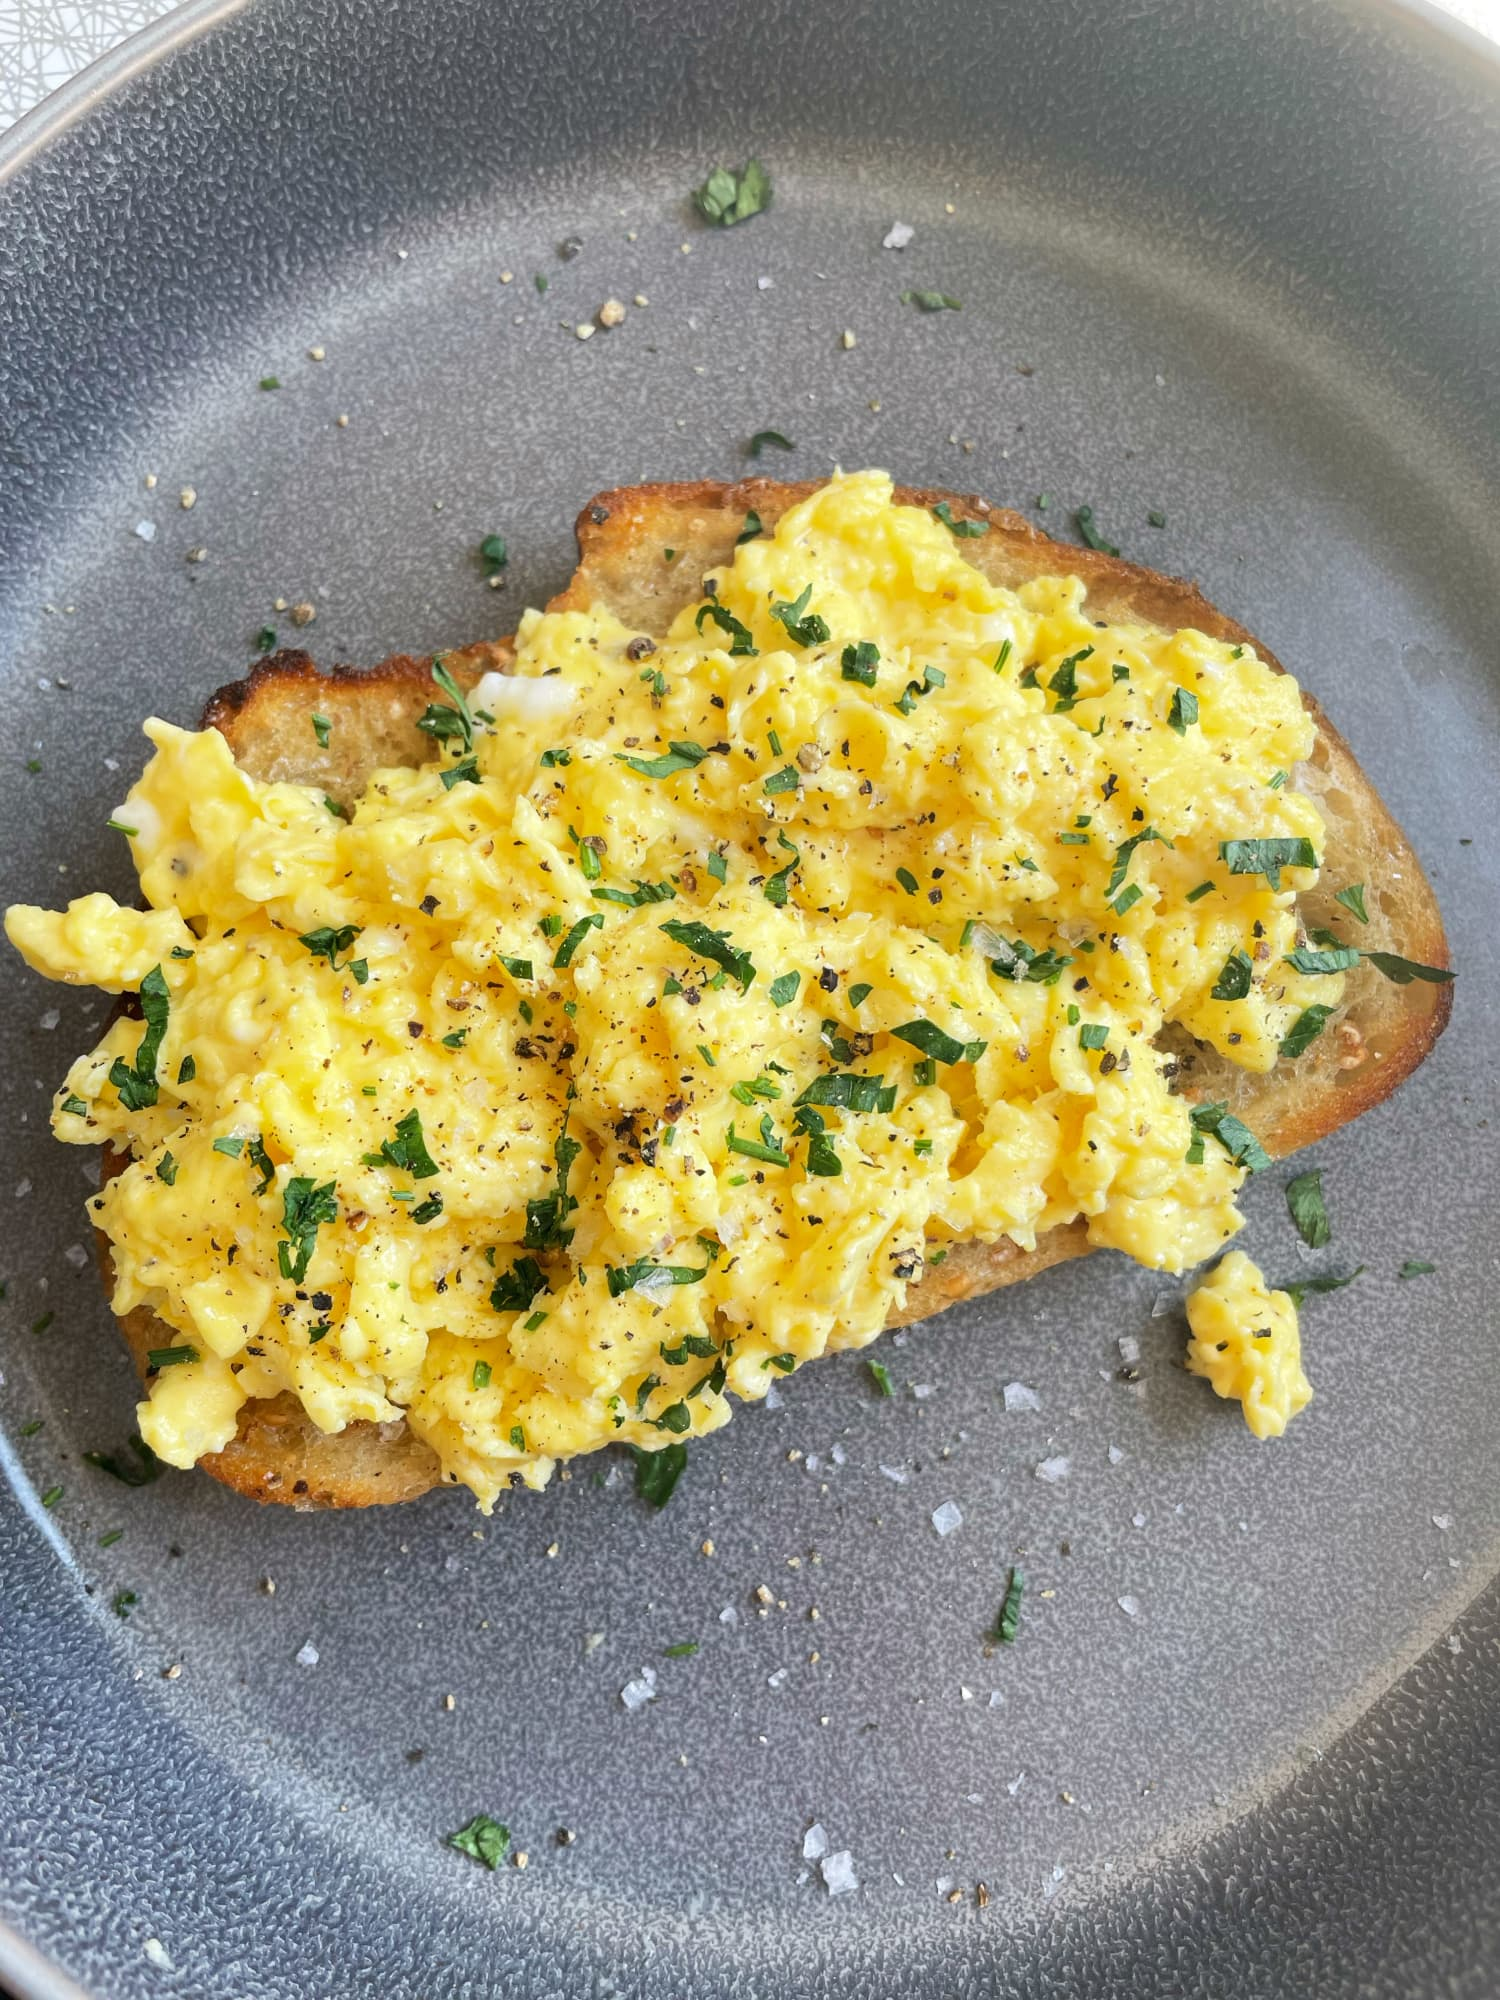 I Tried Mayoneggs and They're My New Favorite Scrambled Eggs